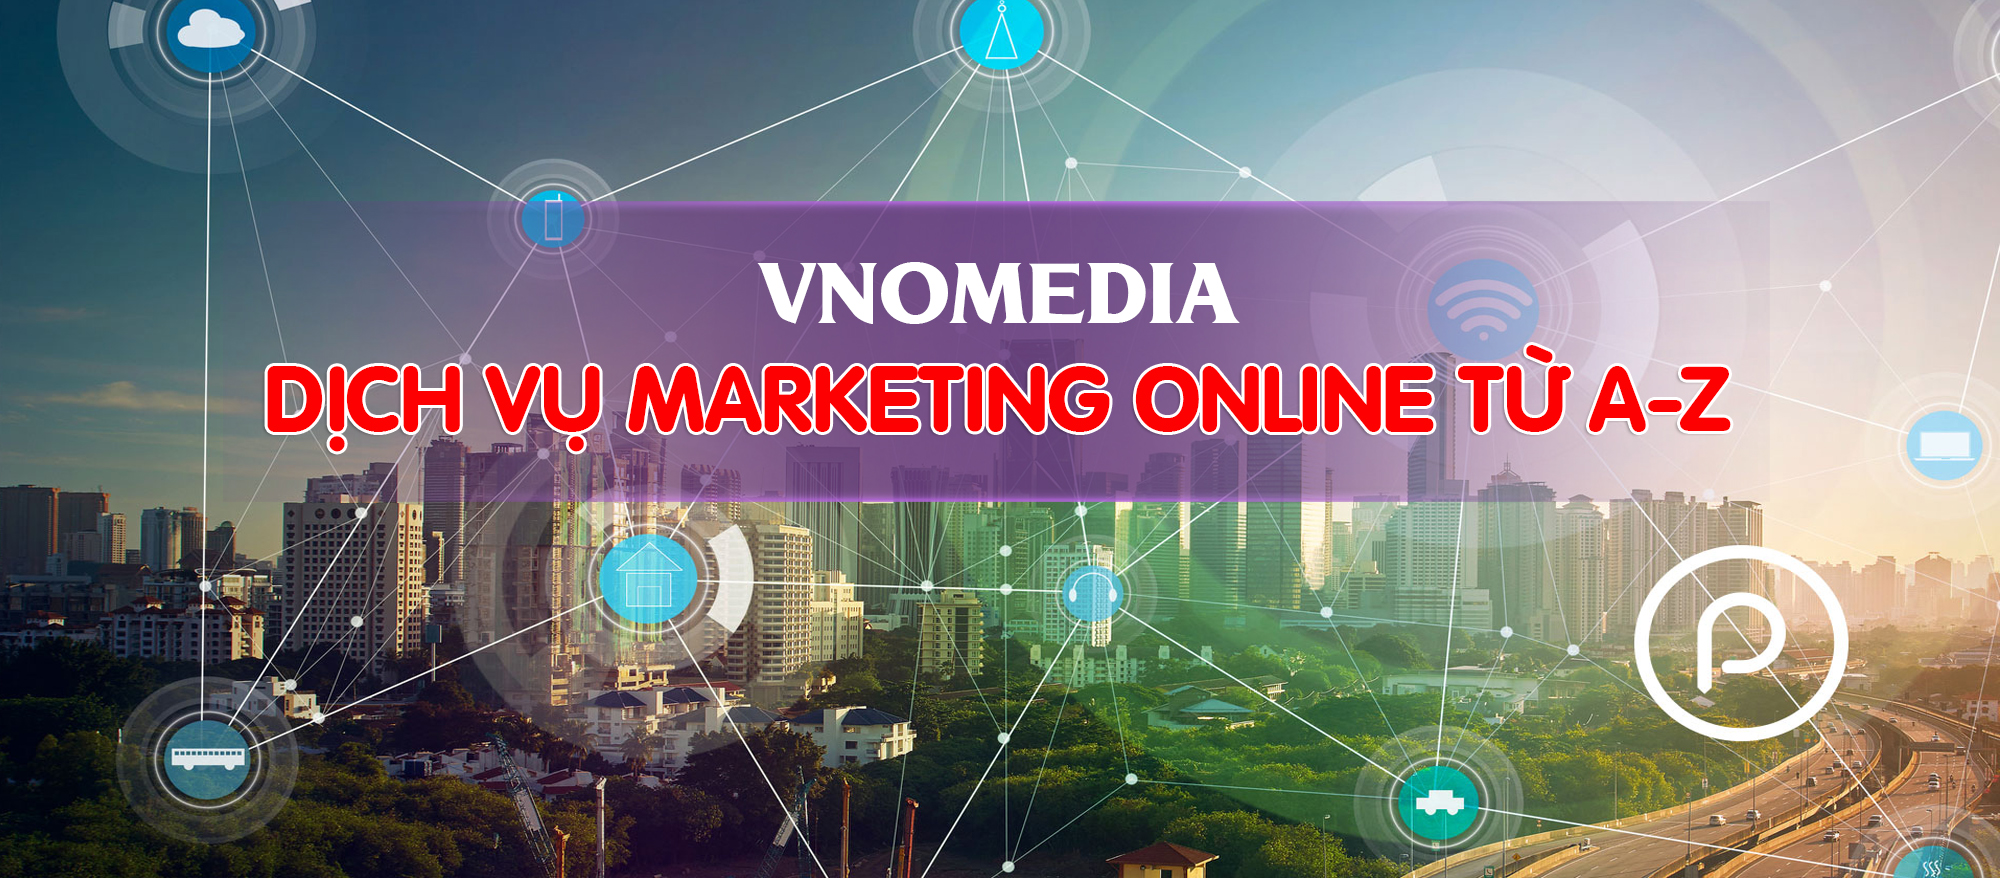 dich vu marketing online